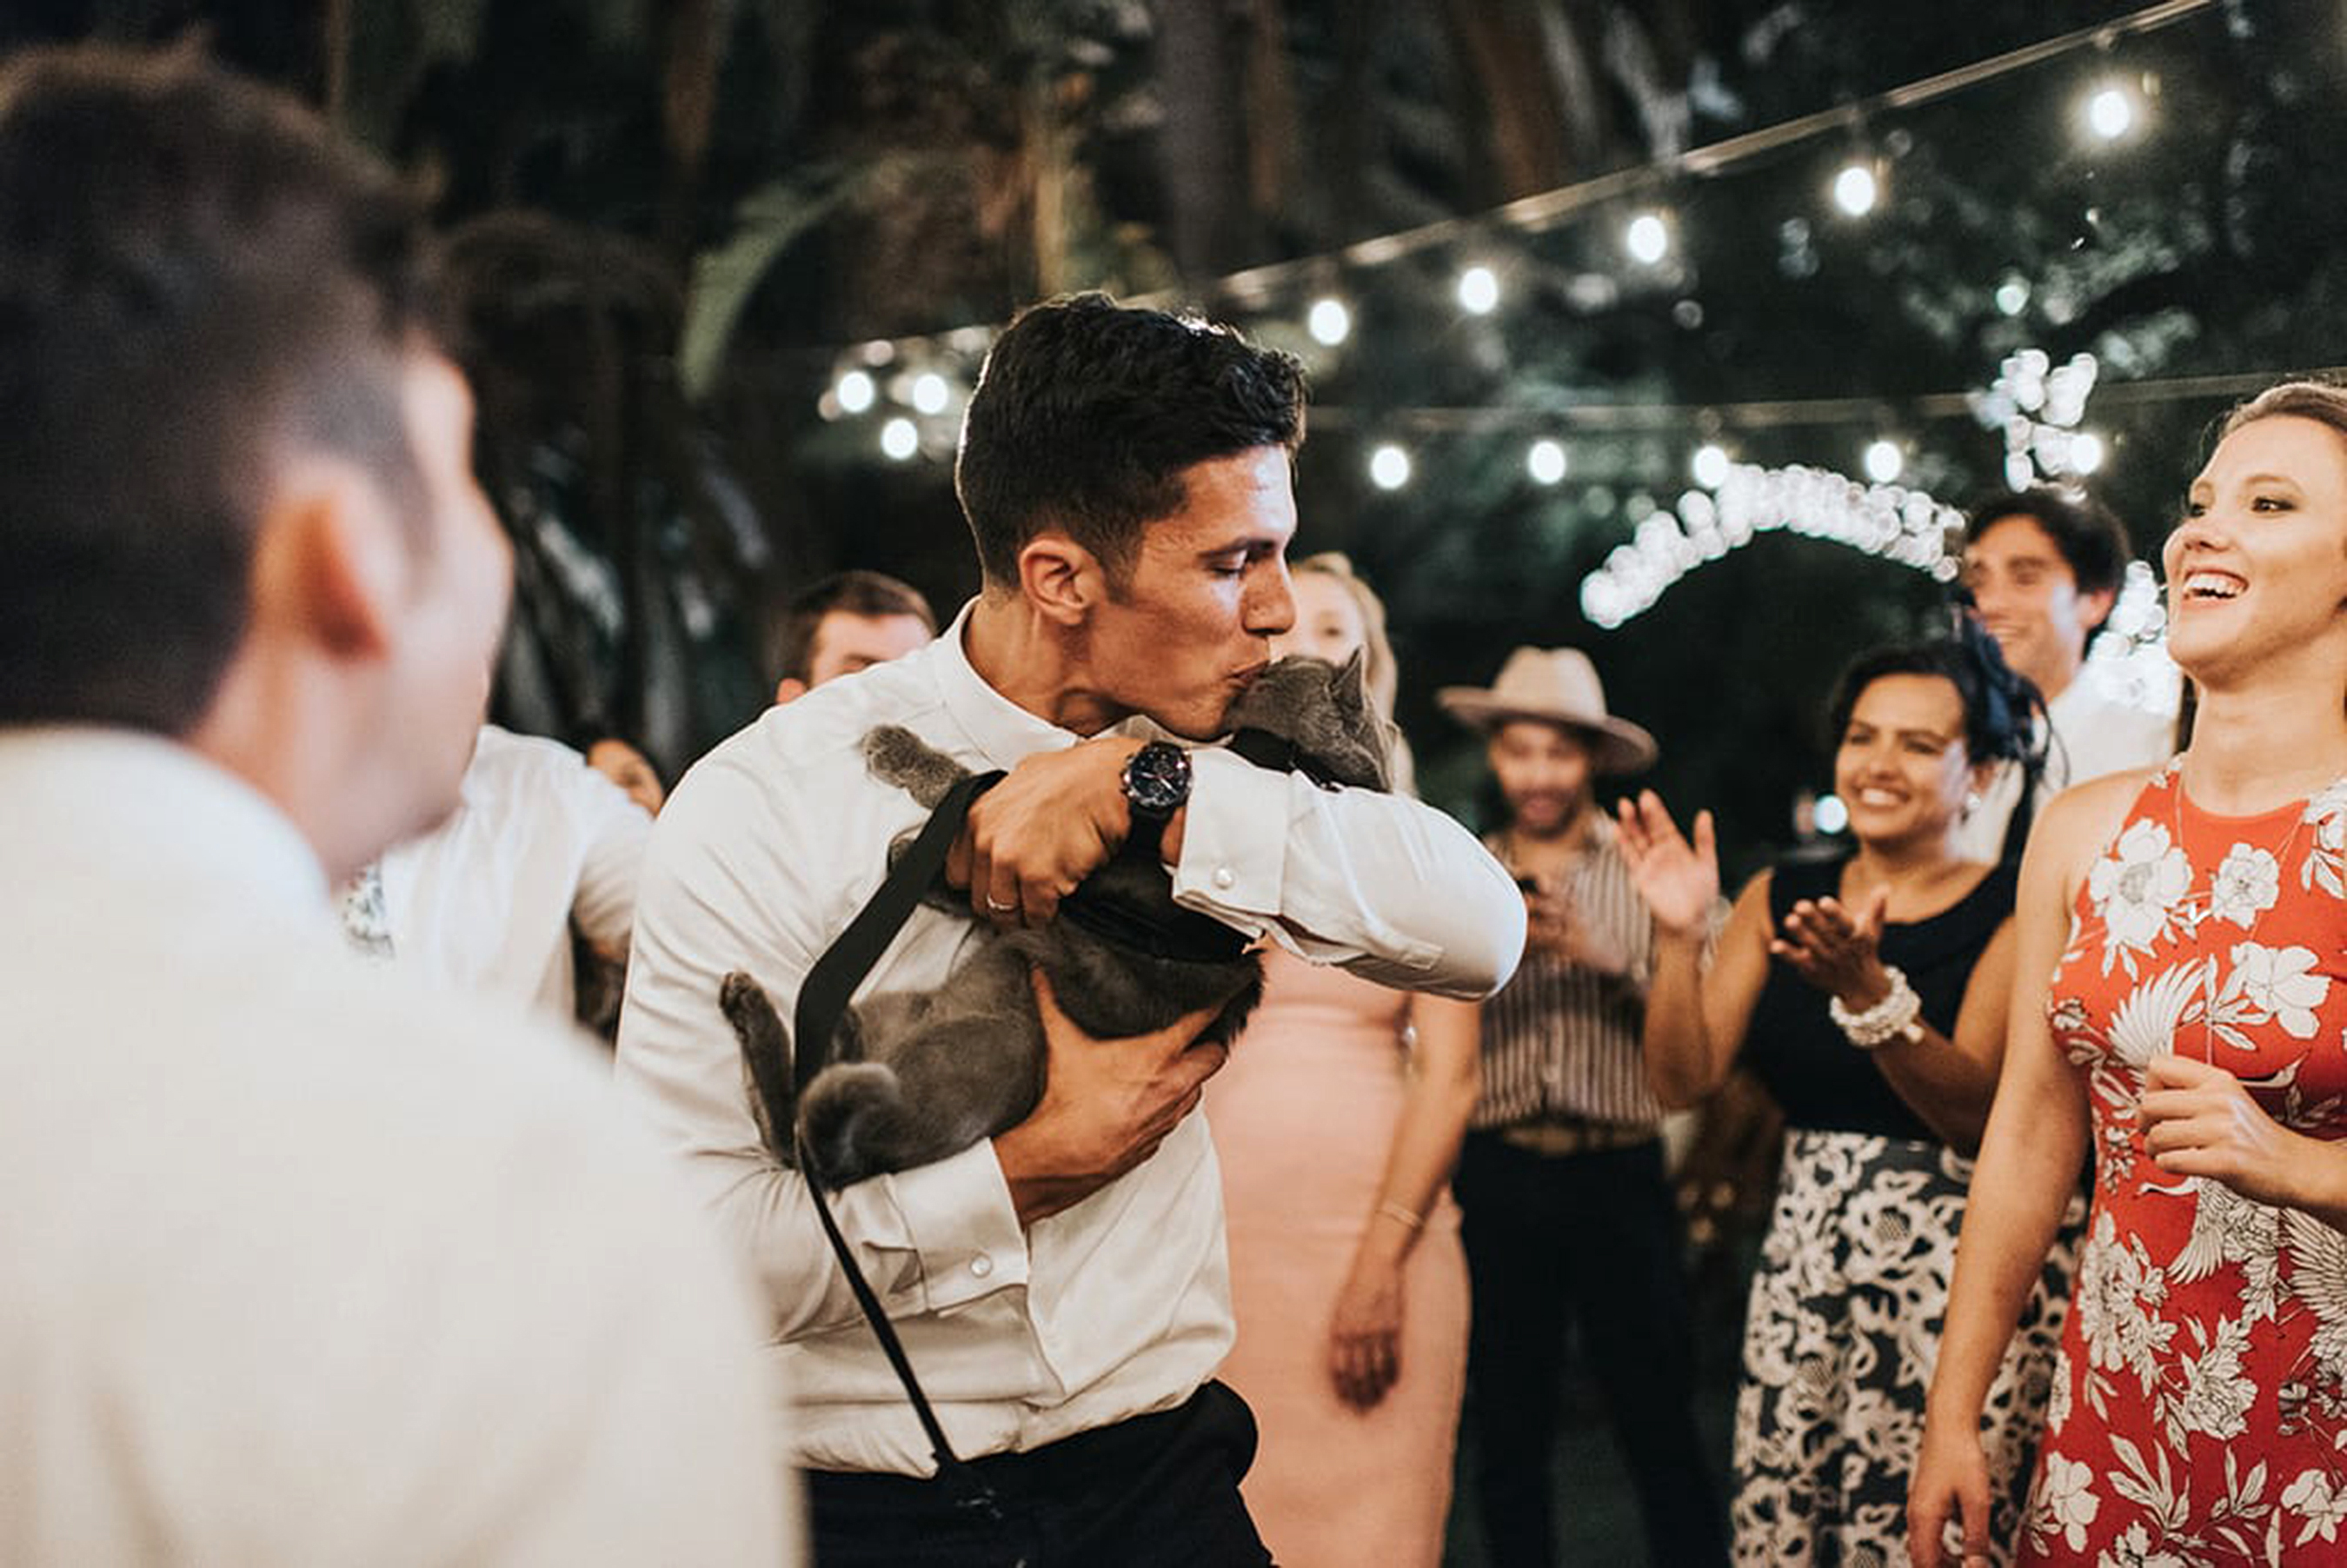 groom's cat serves as best man at wedding